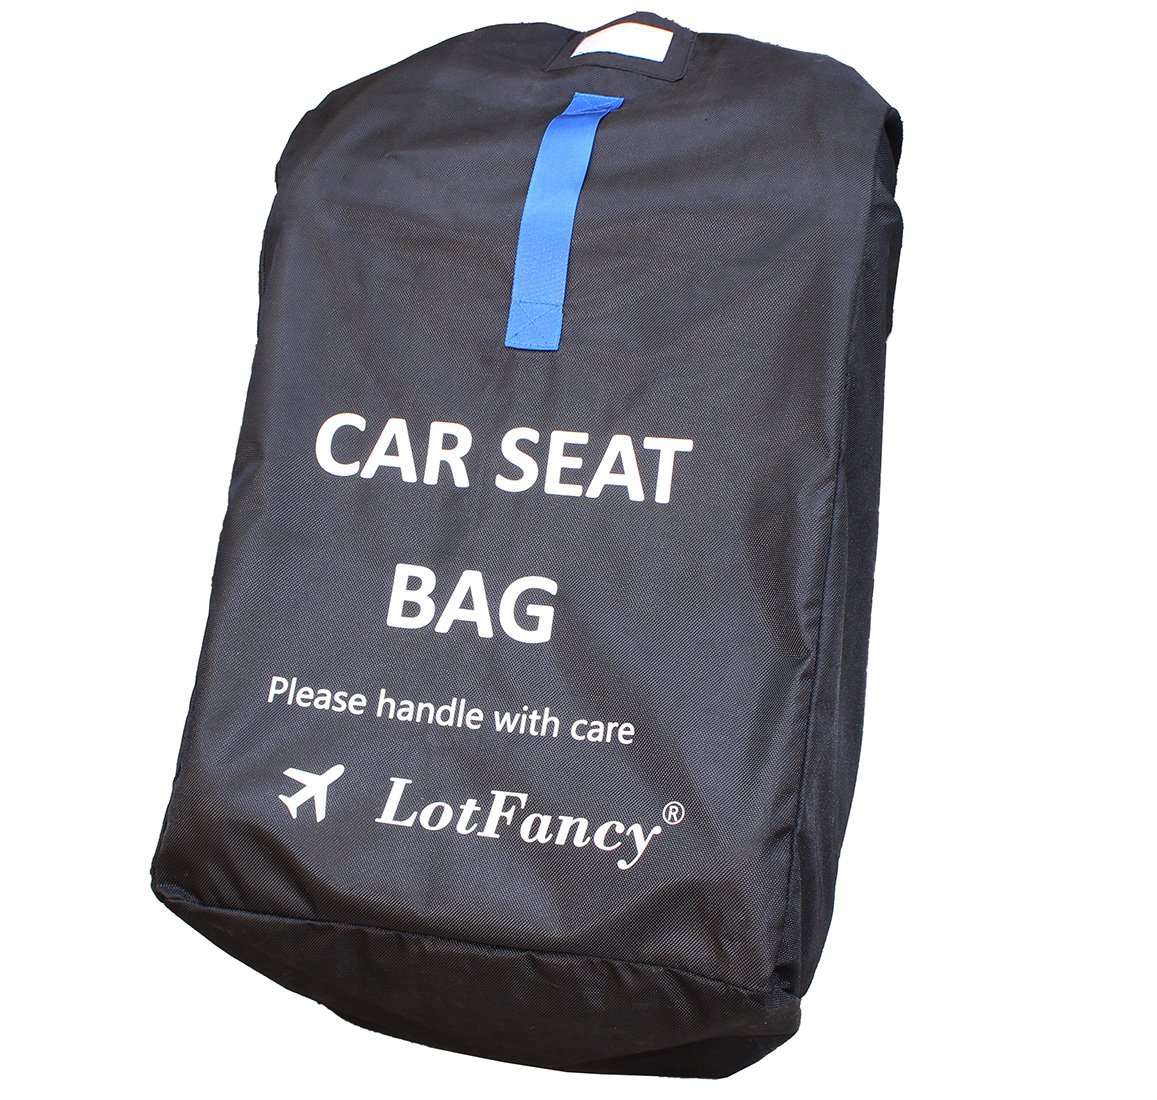 LotFancy Car Seat Travel Bag with Shoulder Straps & Zipper Pouch, Ideal for Airline Gate Check, Durable & Water-resistant (Size 18 x 18 x 34 inch)